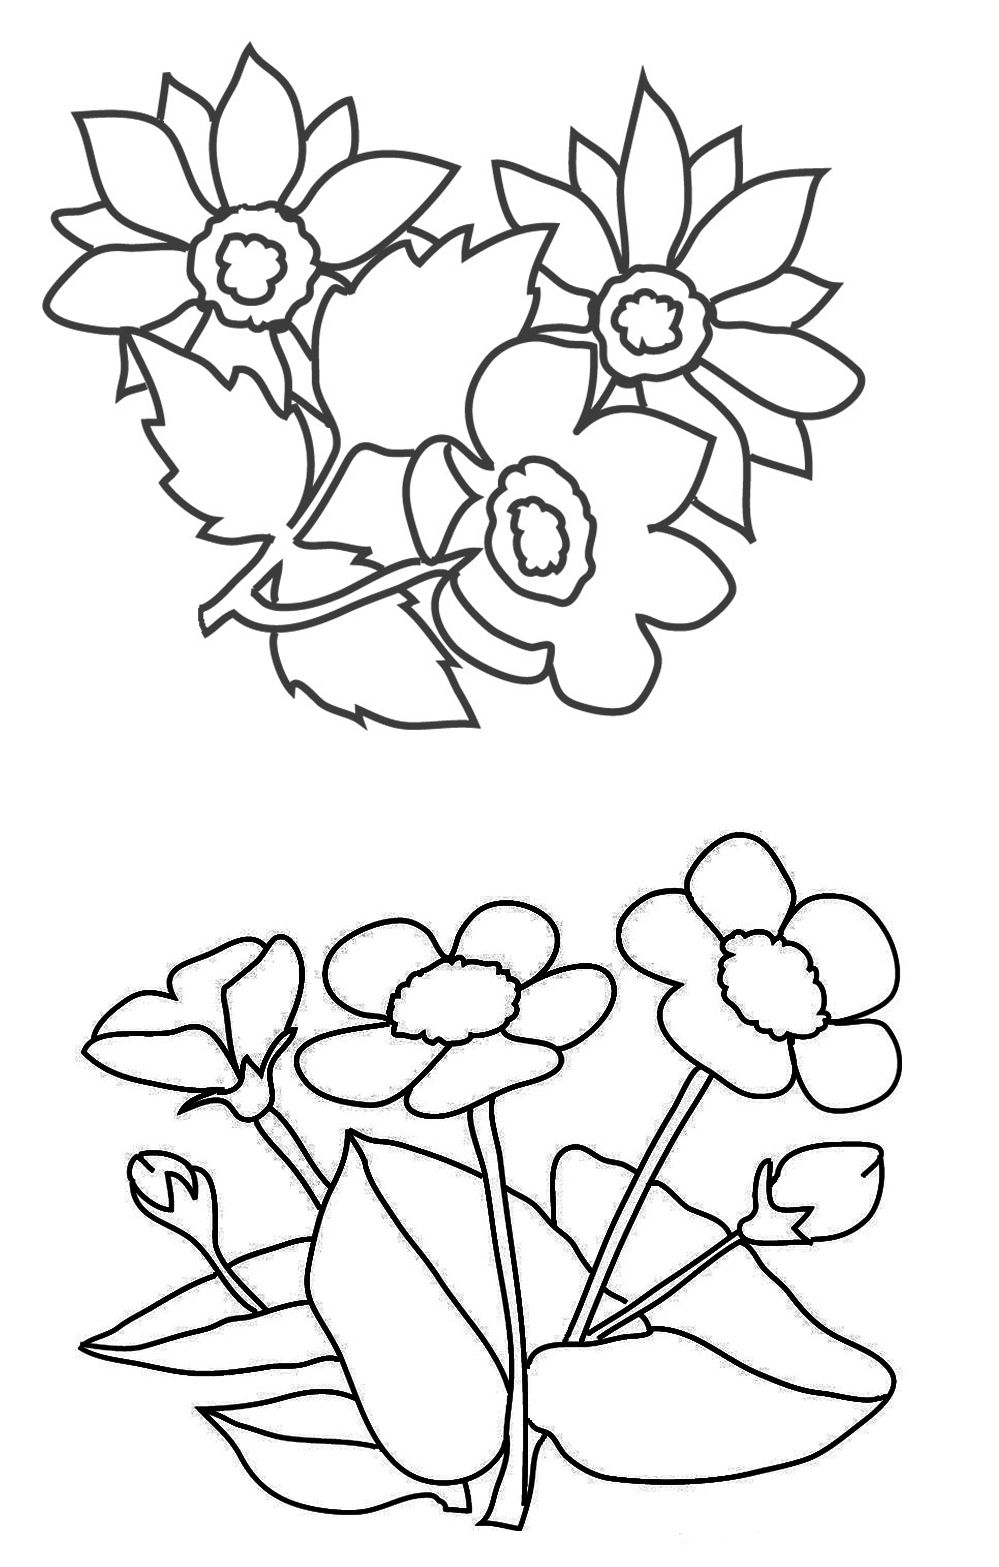 flowers coloring page flower coloring pages for adults best coloring pages for flowers page coloring